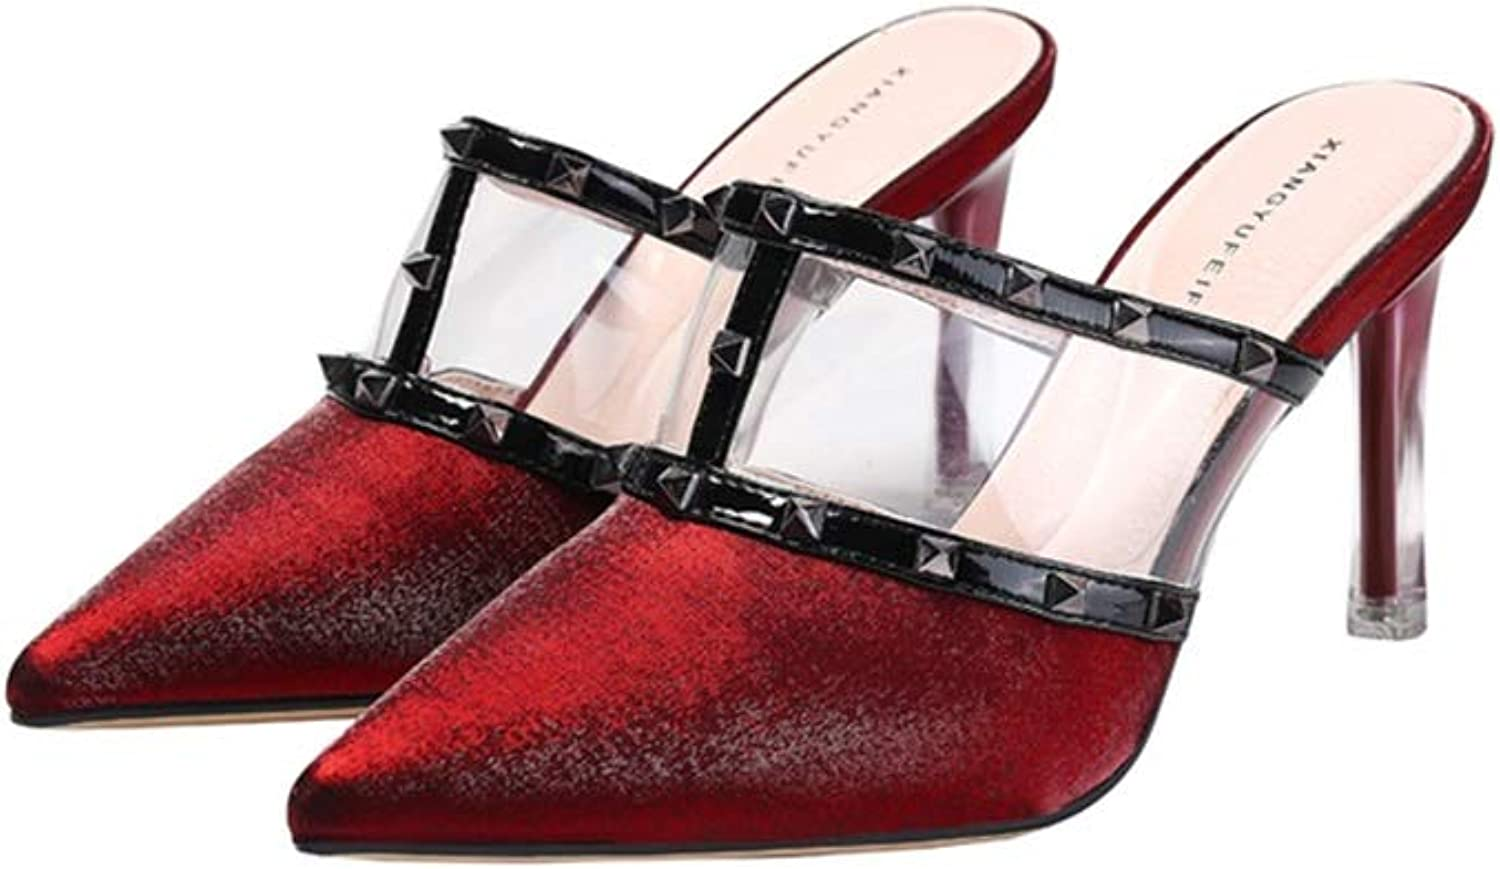 WANGFANG Sandals High-Heeled Slippers, Personality Pointed Rivets Kitten Heel Slippers Pointed shoes for Women (color   Red, Size   US6 EU37 UK4 MX3.5 CN37)